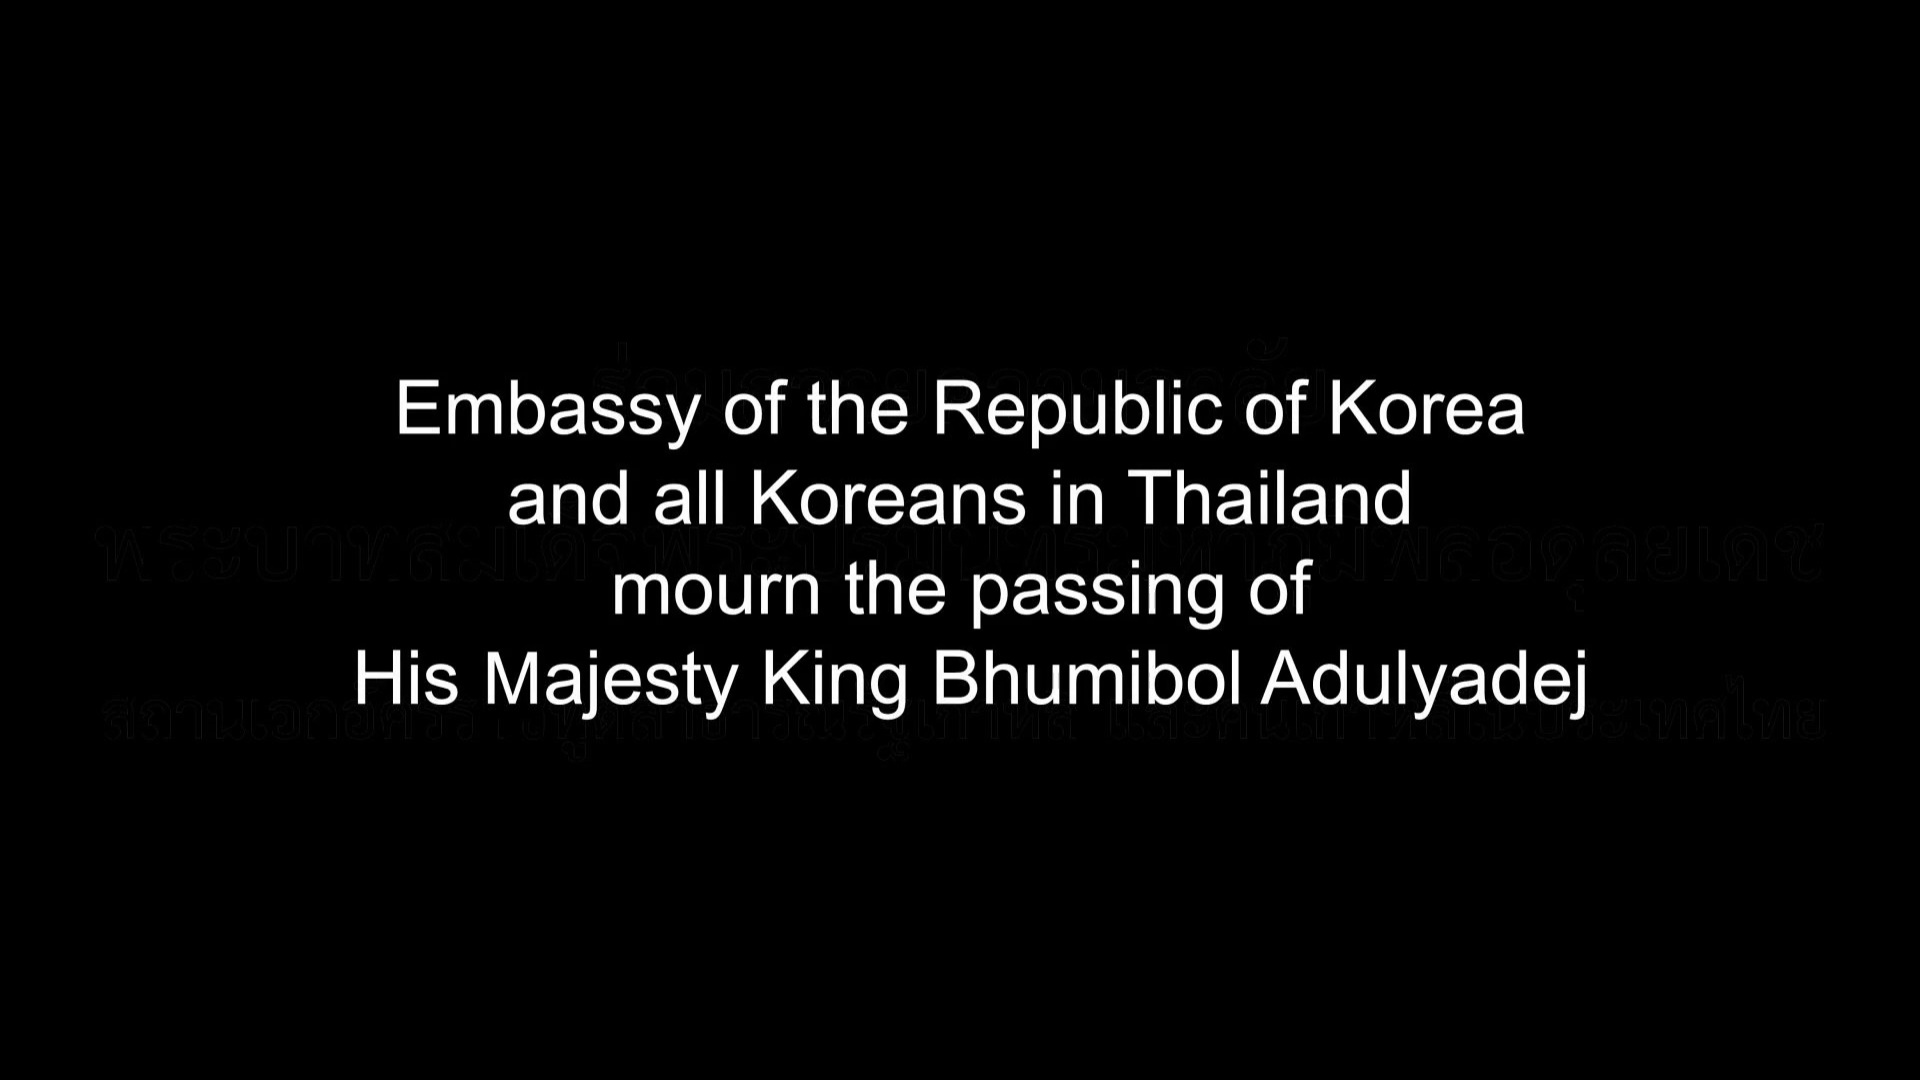 Korea joins hands to mourn for Thailand at Sanam Luan 15 Nov. 2016